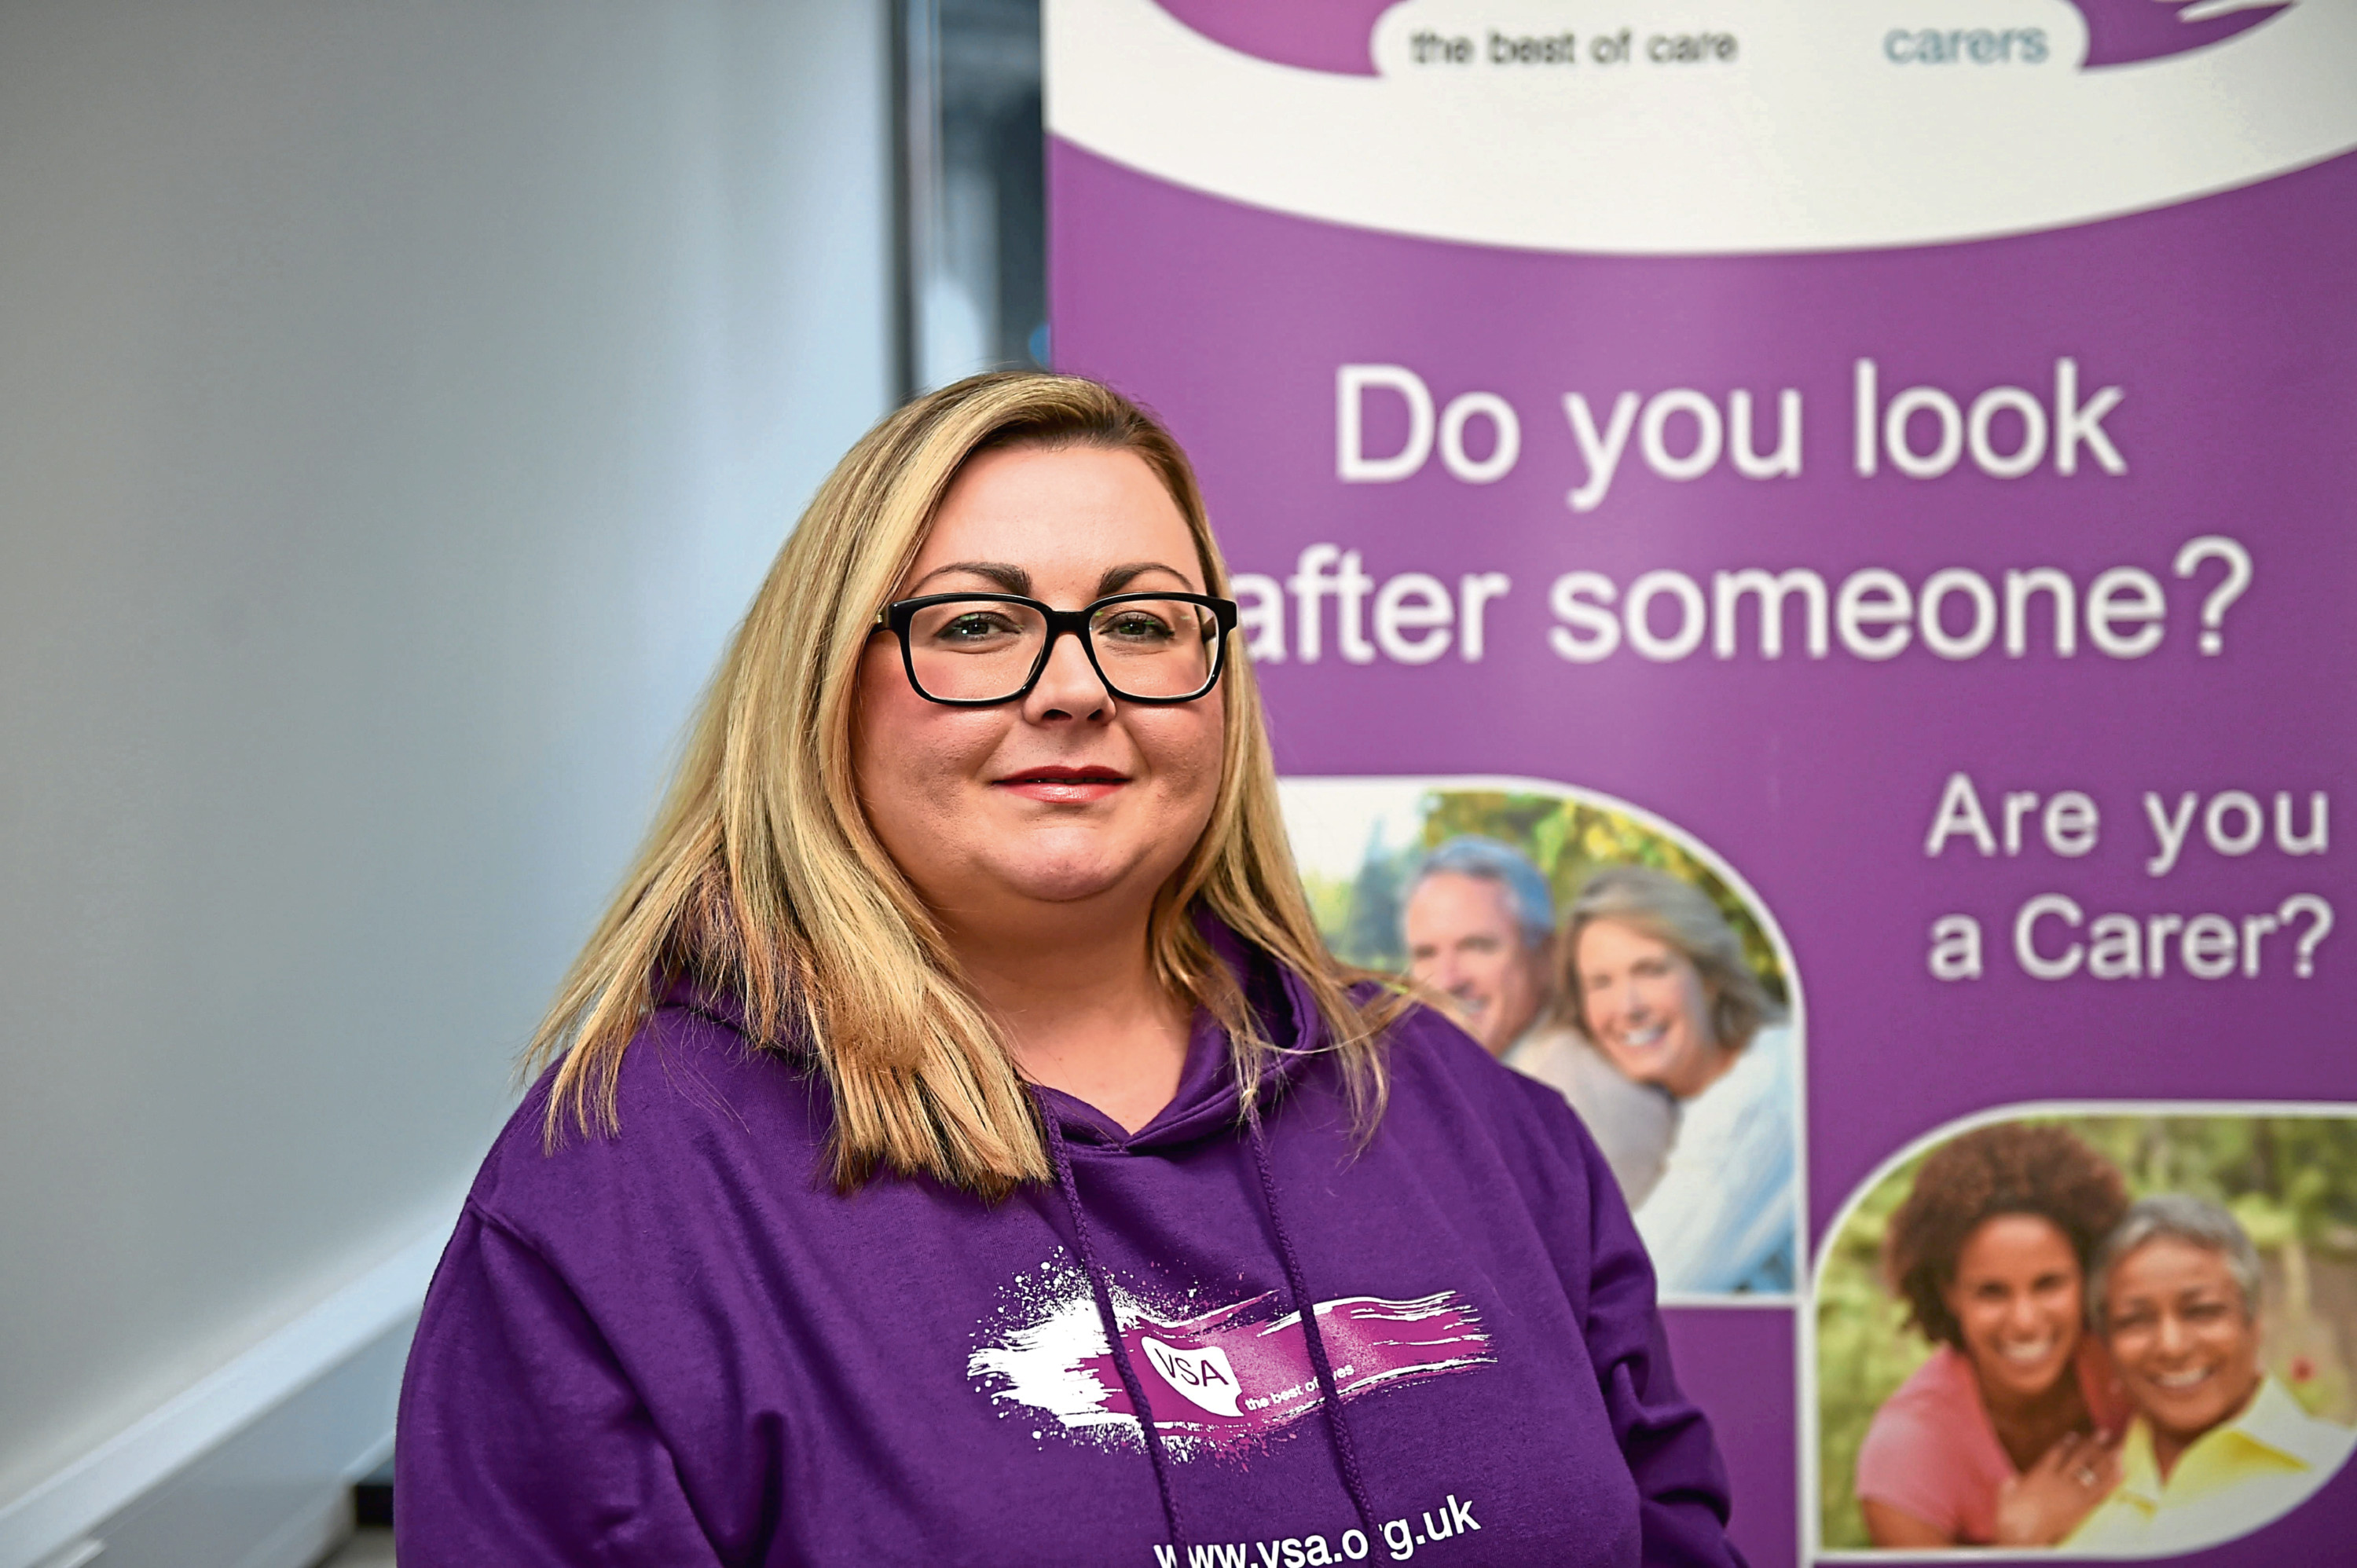 VSA's carers manager Jackie Campbell says the charity is on hand to provide support.